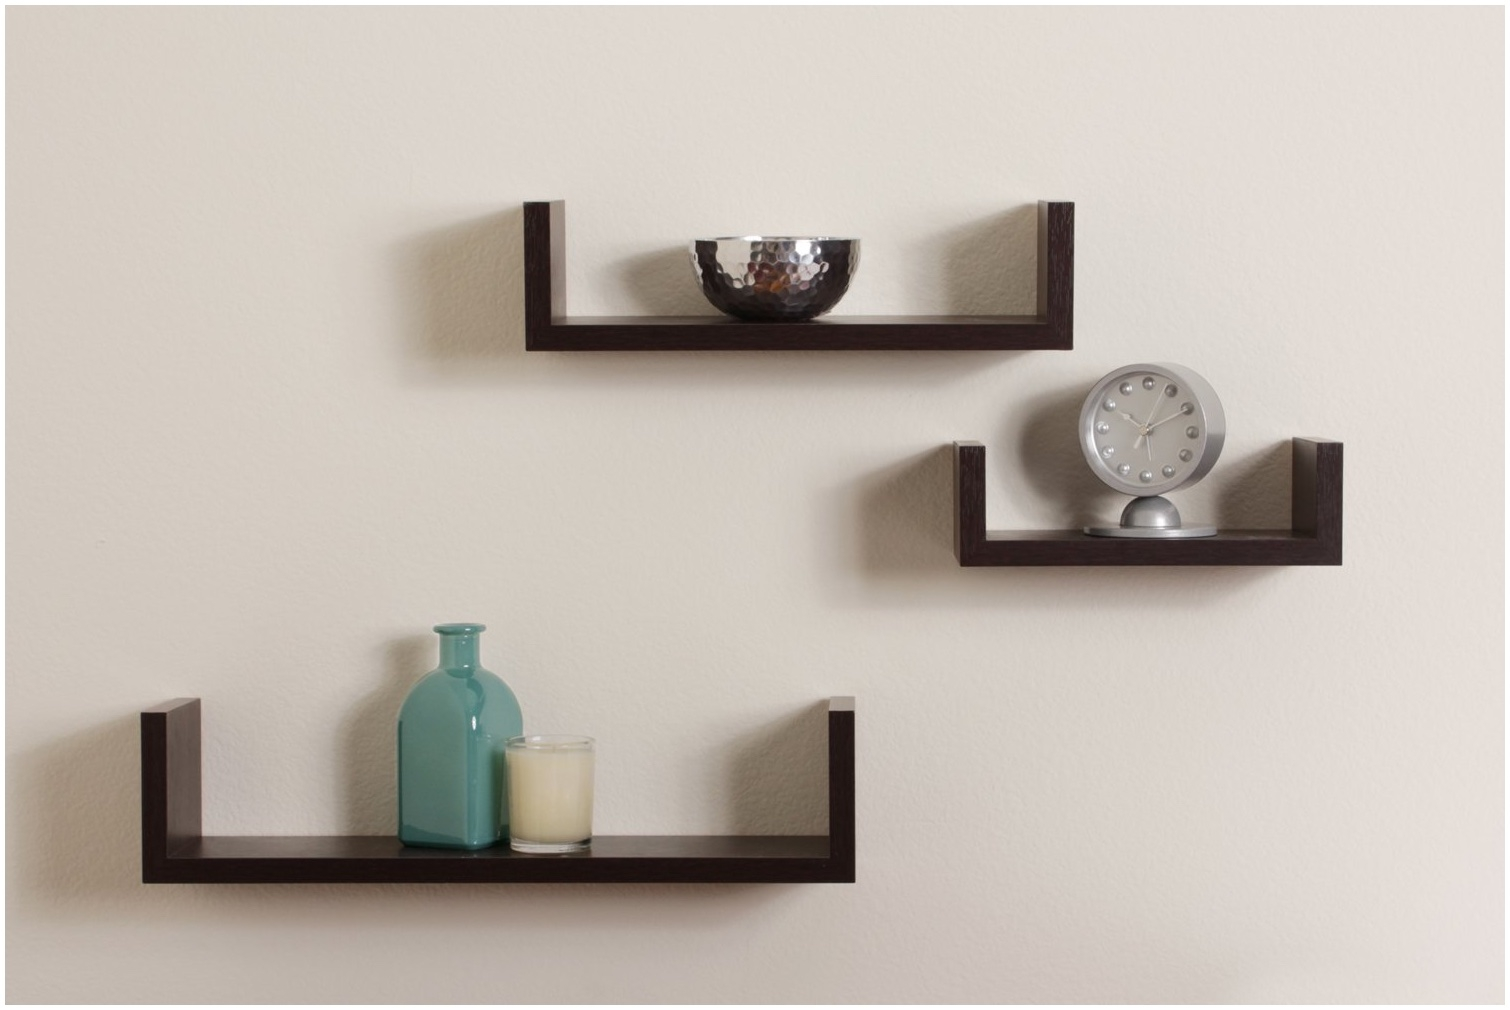 Amusing Small Wall Shelves For Speakers 56 For Your Fixing Shelves In Shelves On Plasterboard Walls (View 2 of 12)